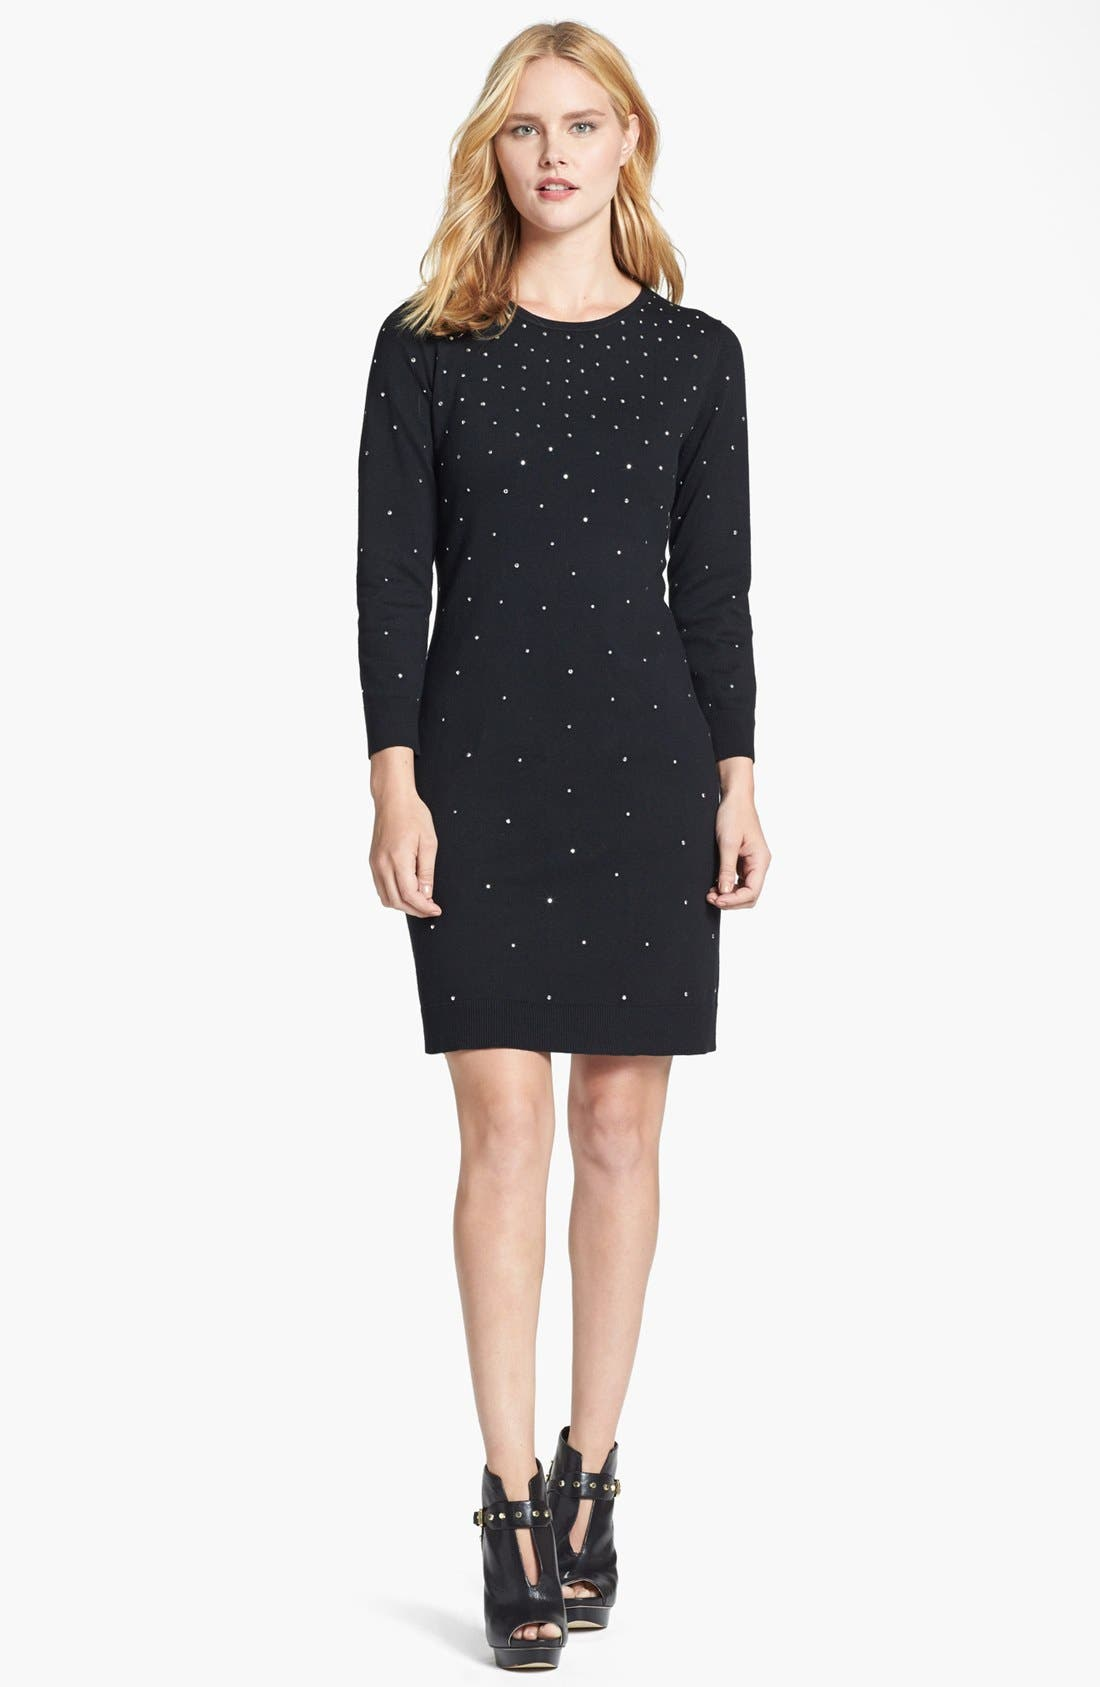 Alternate Image 1 Selected - MICHAEL Michael Kors Studded Dress (Regular & Petite)